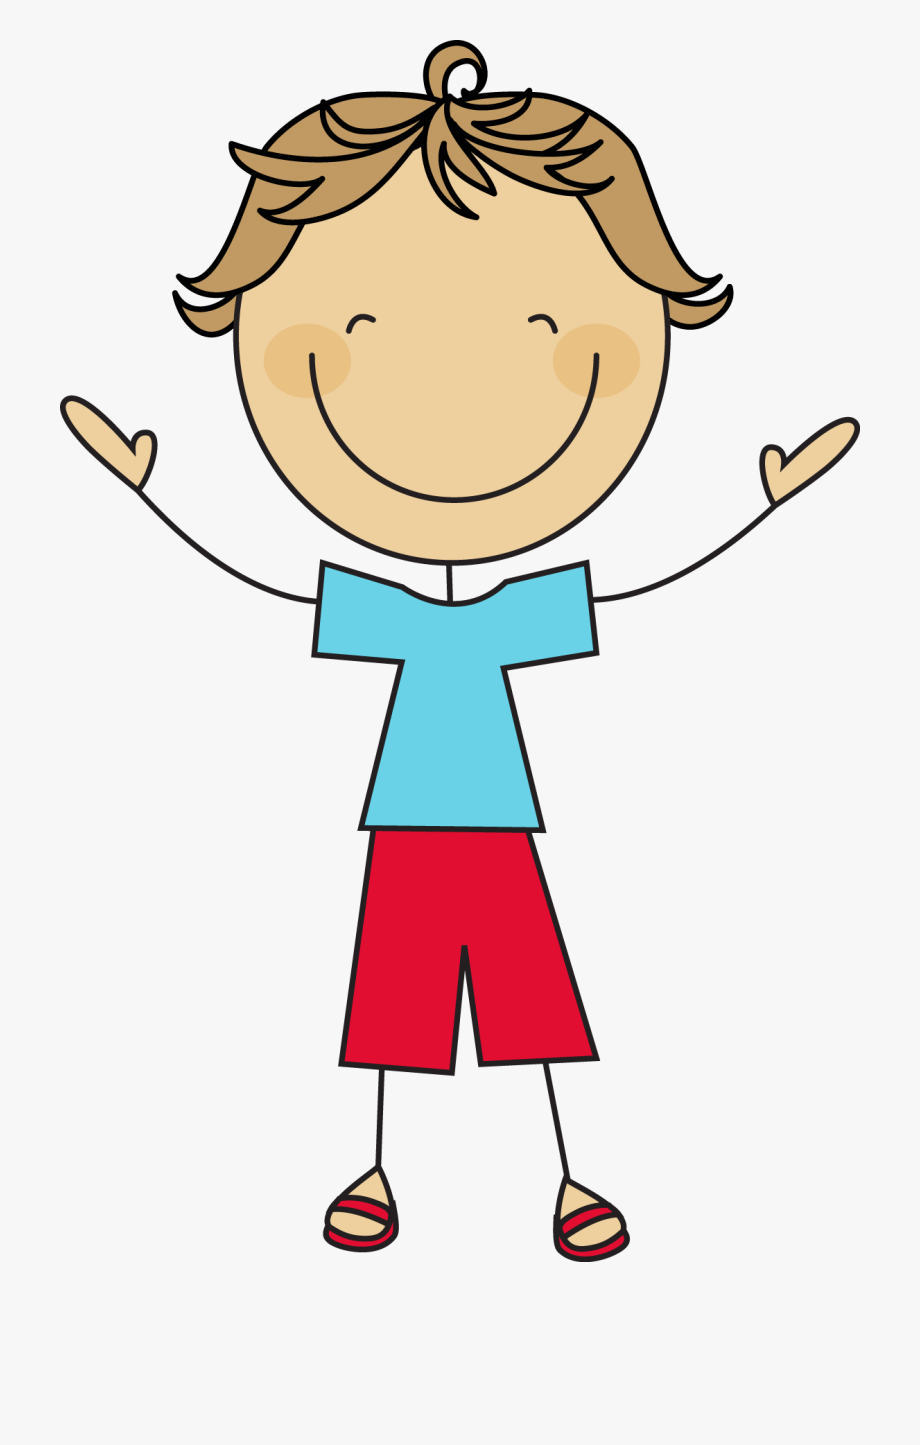 Simple person clipart graphic freeuse download A Stick Figure Is A Very Simple Drawing Of A Person - Stick ... graphic freeuse download